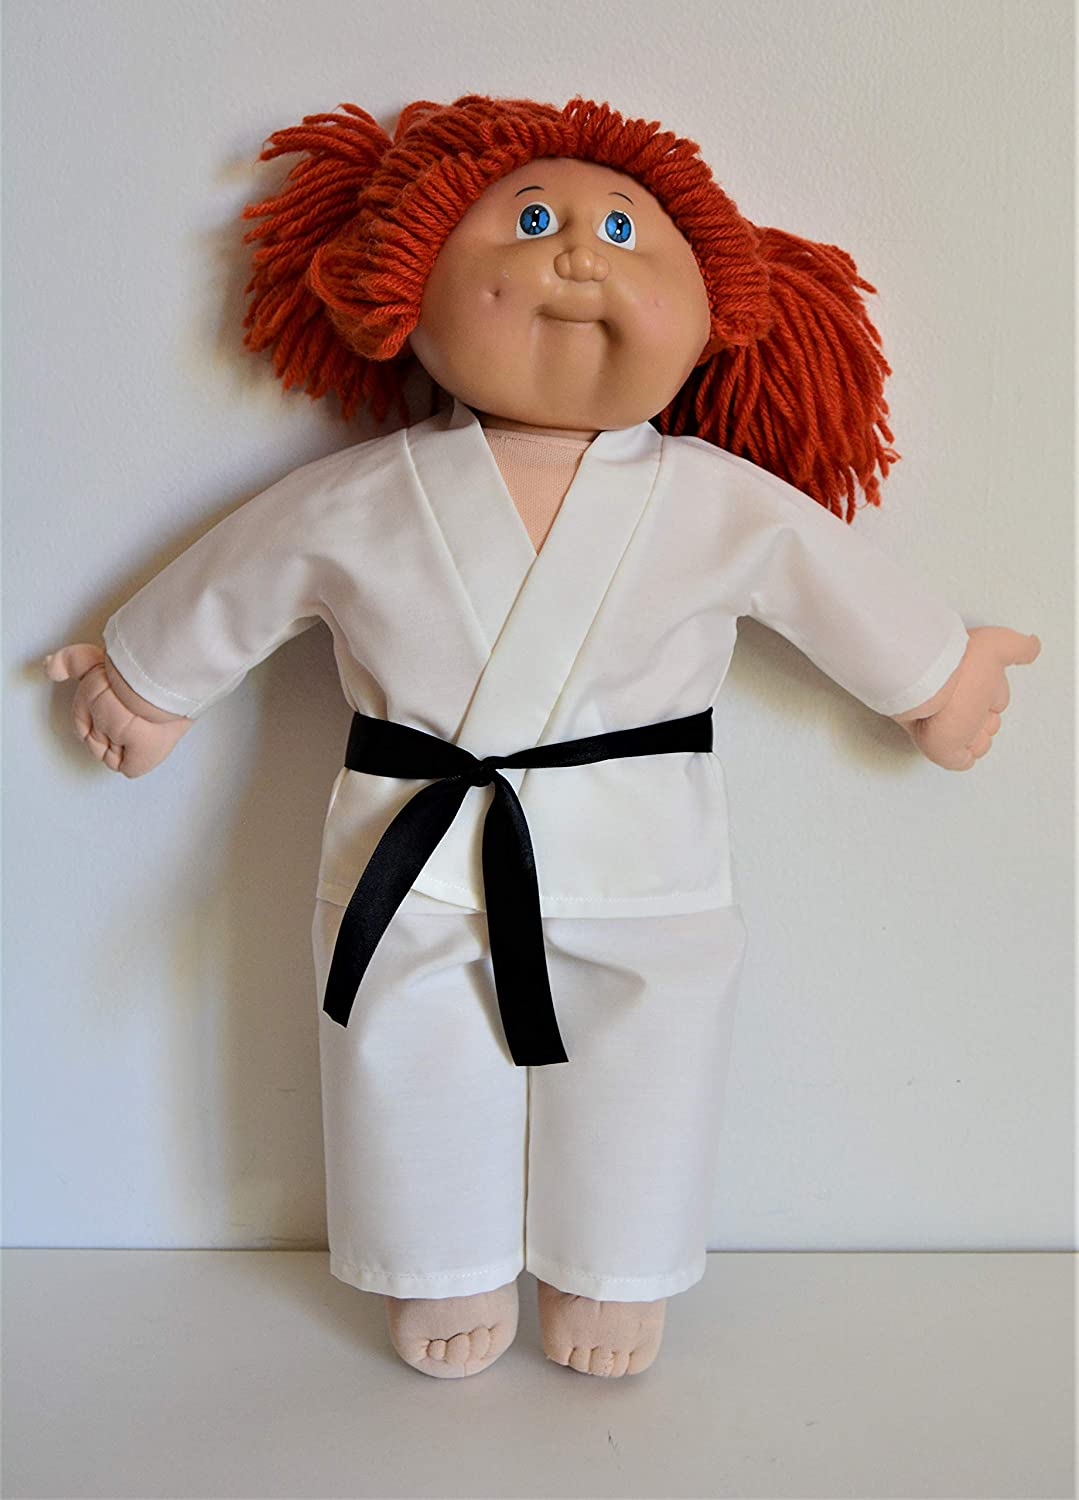 Handmade Doll Clothes White Karate Uniform Gi Judo TKD fit Cabbage Patch Kids 16 Doll